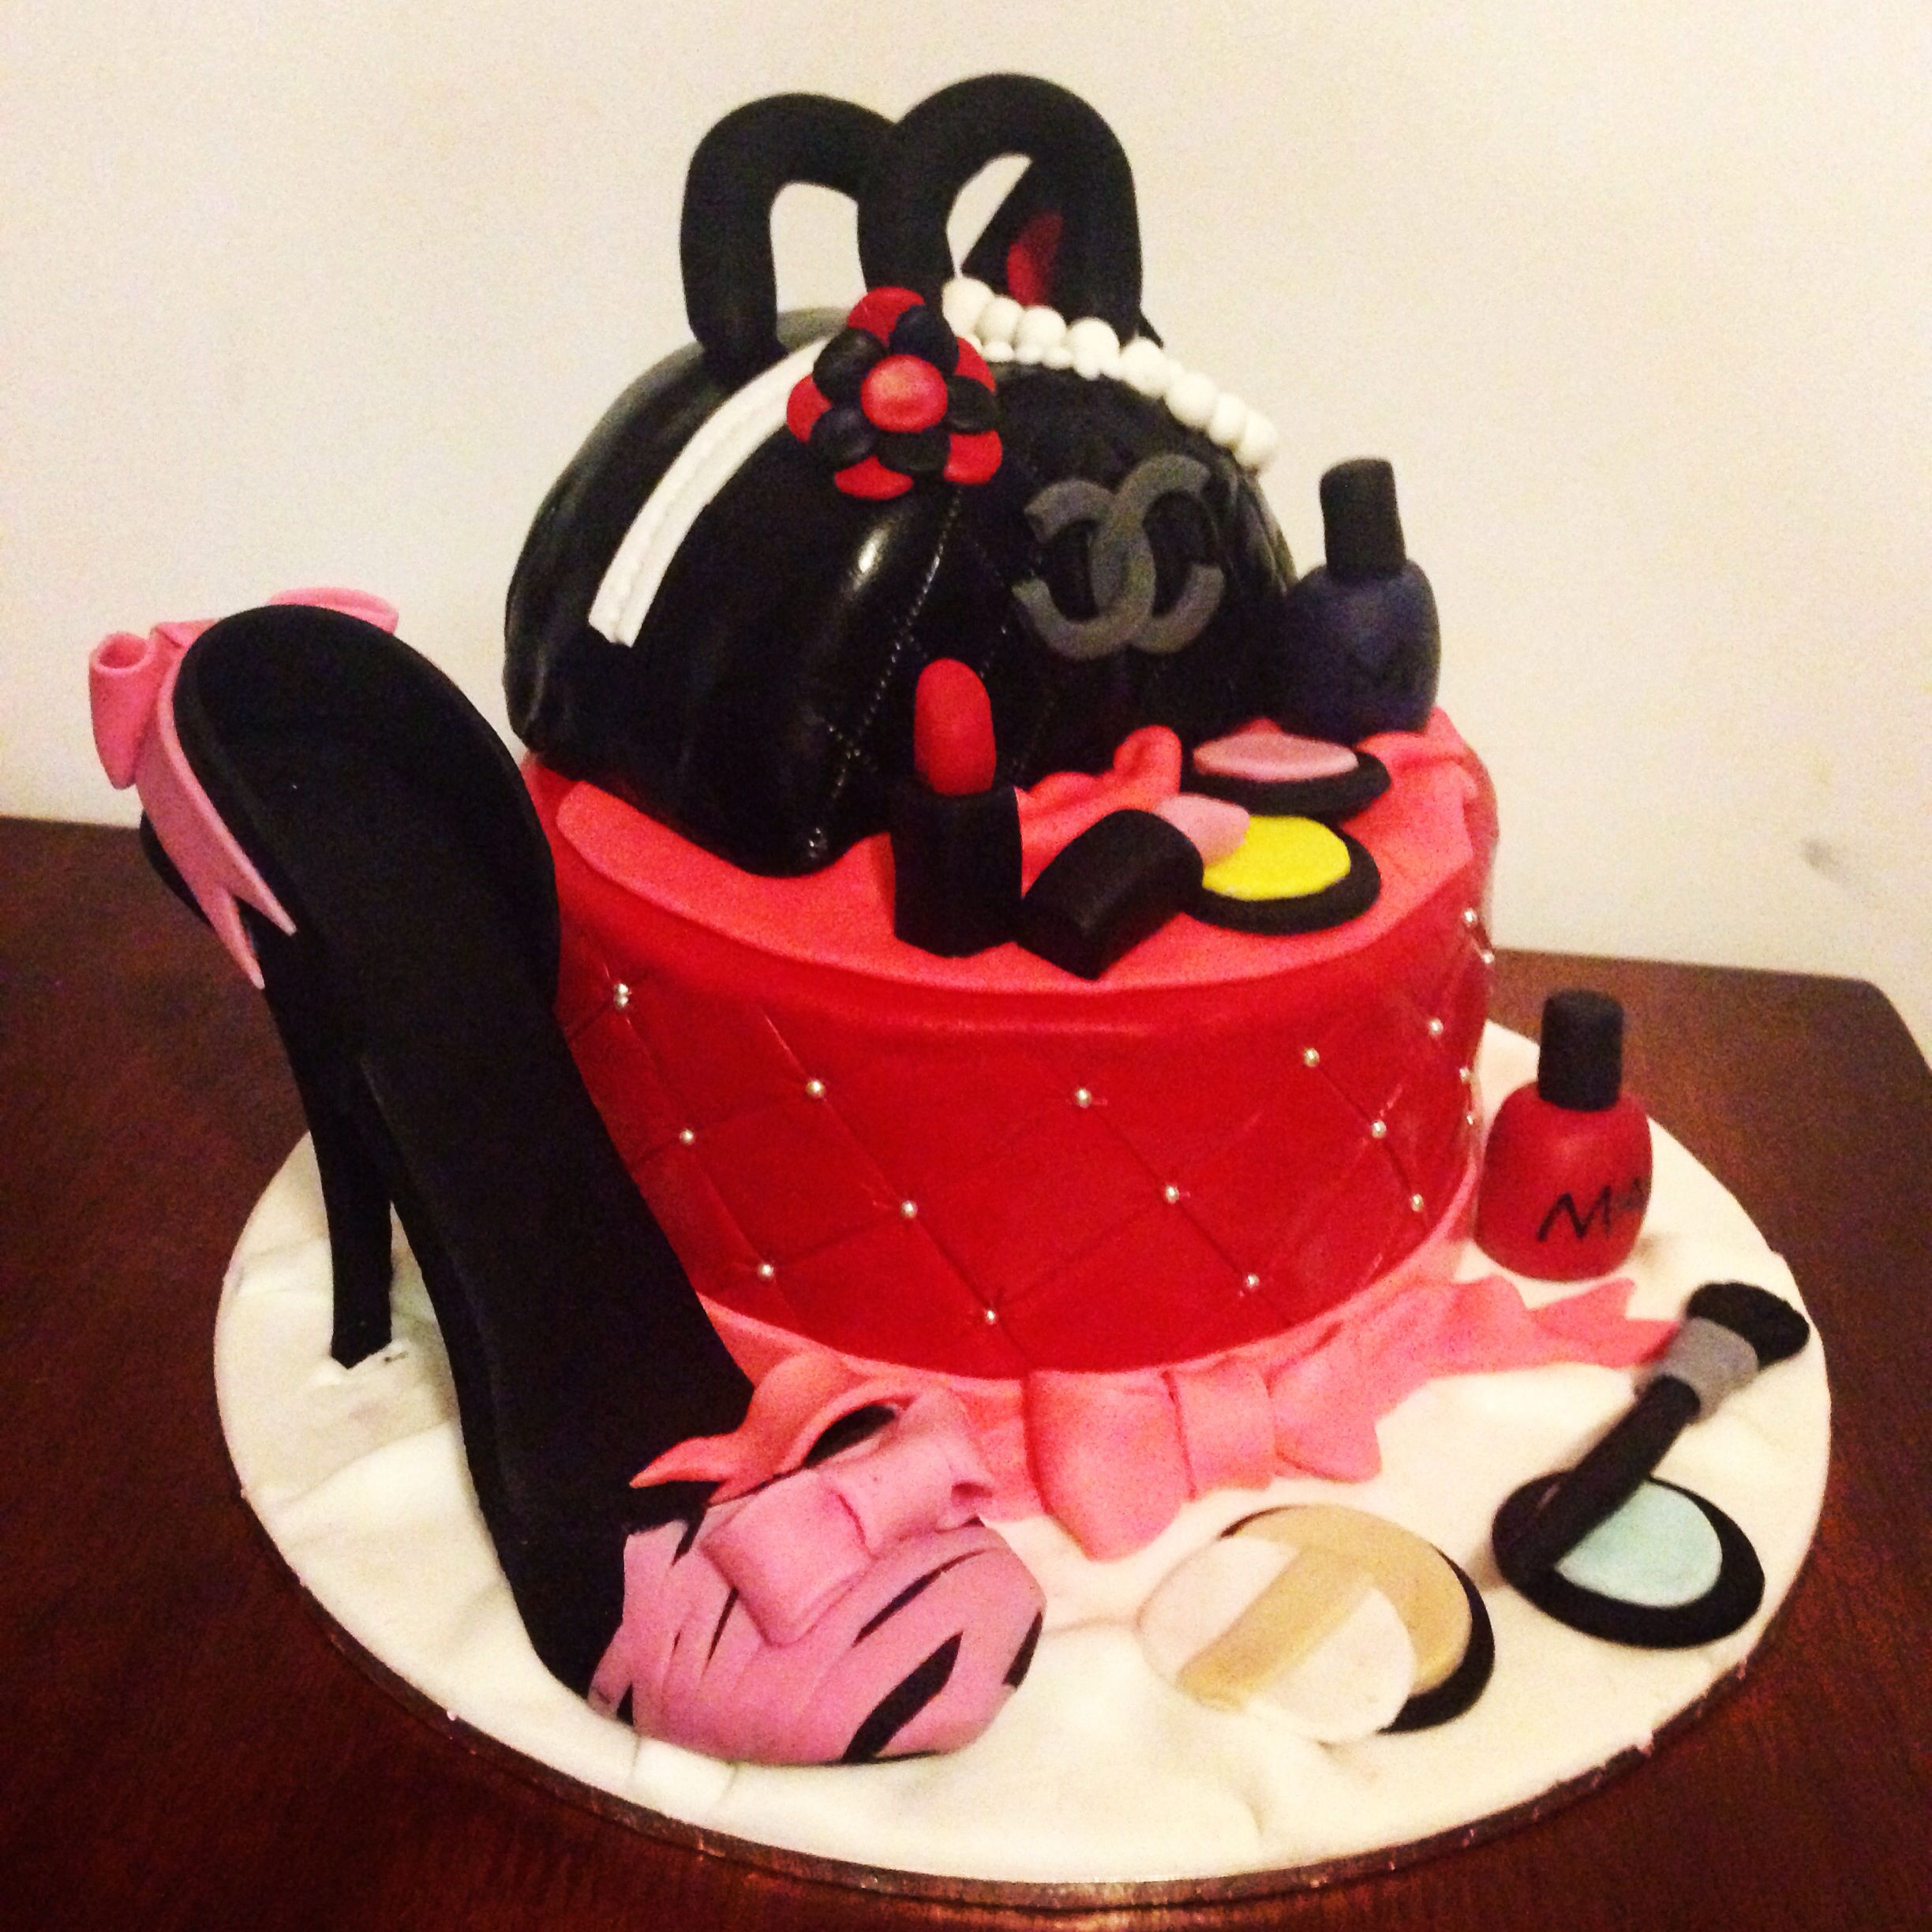 Makeup shoe jewellery 18th birthday cake part girls woman for 18th birthday decoration ideas for girls